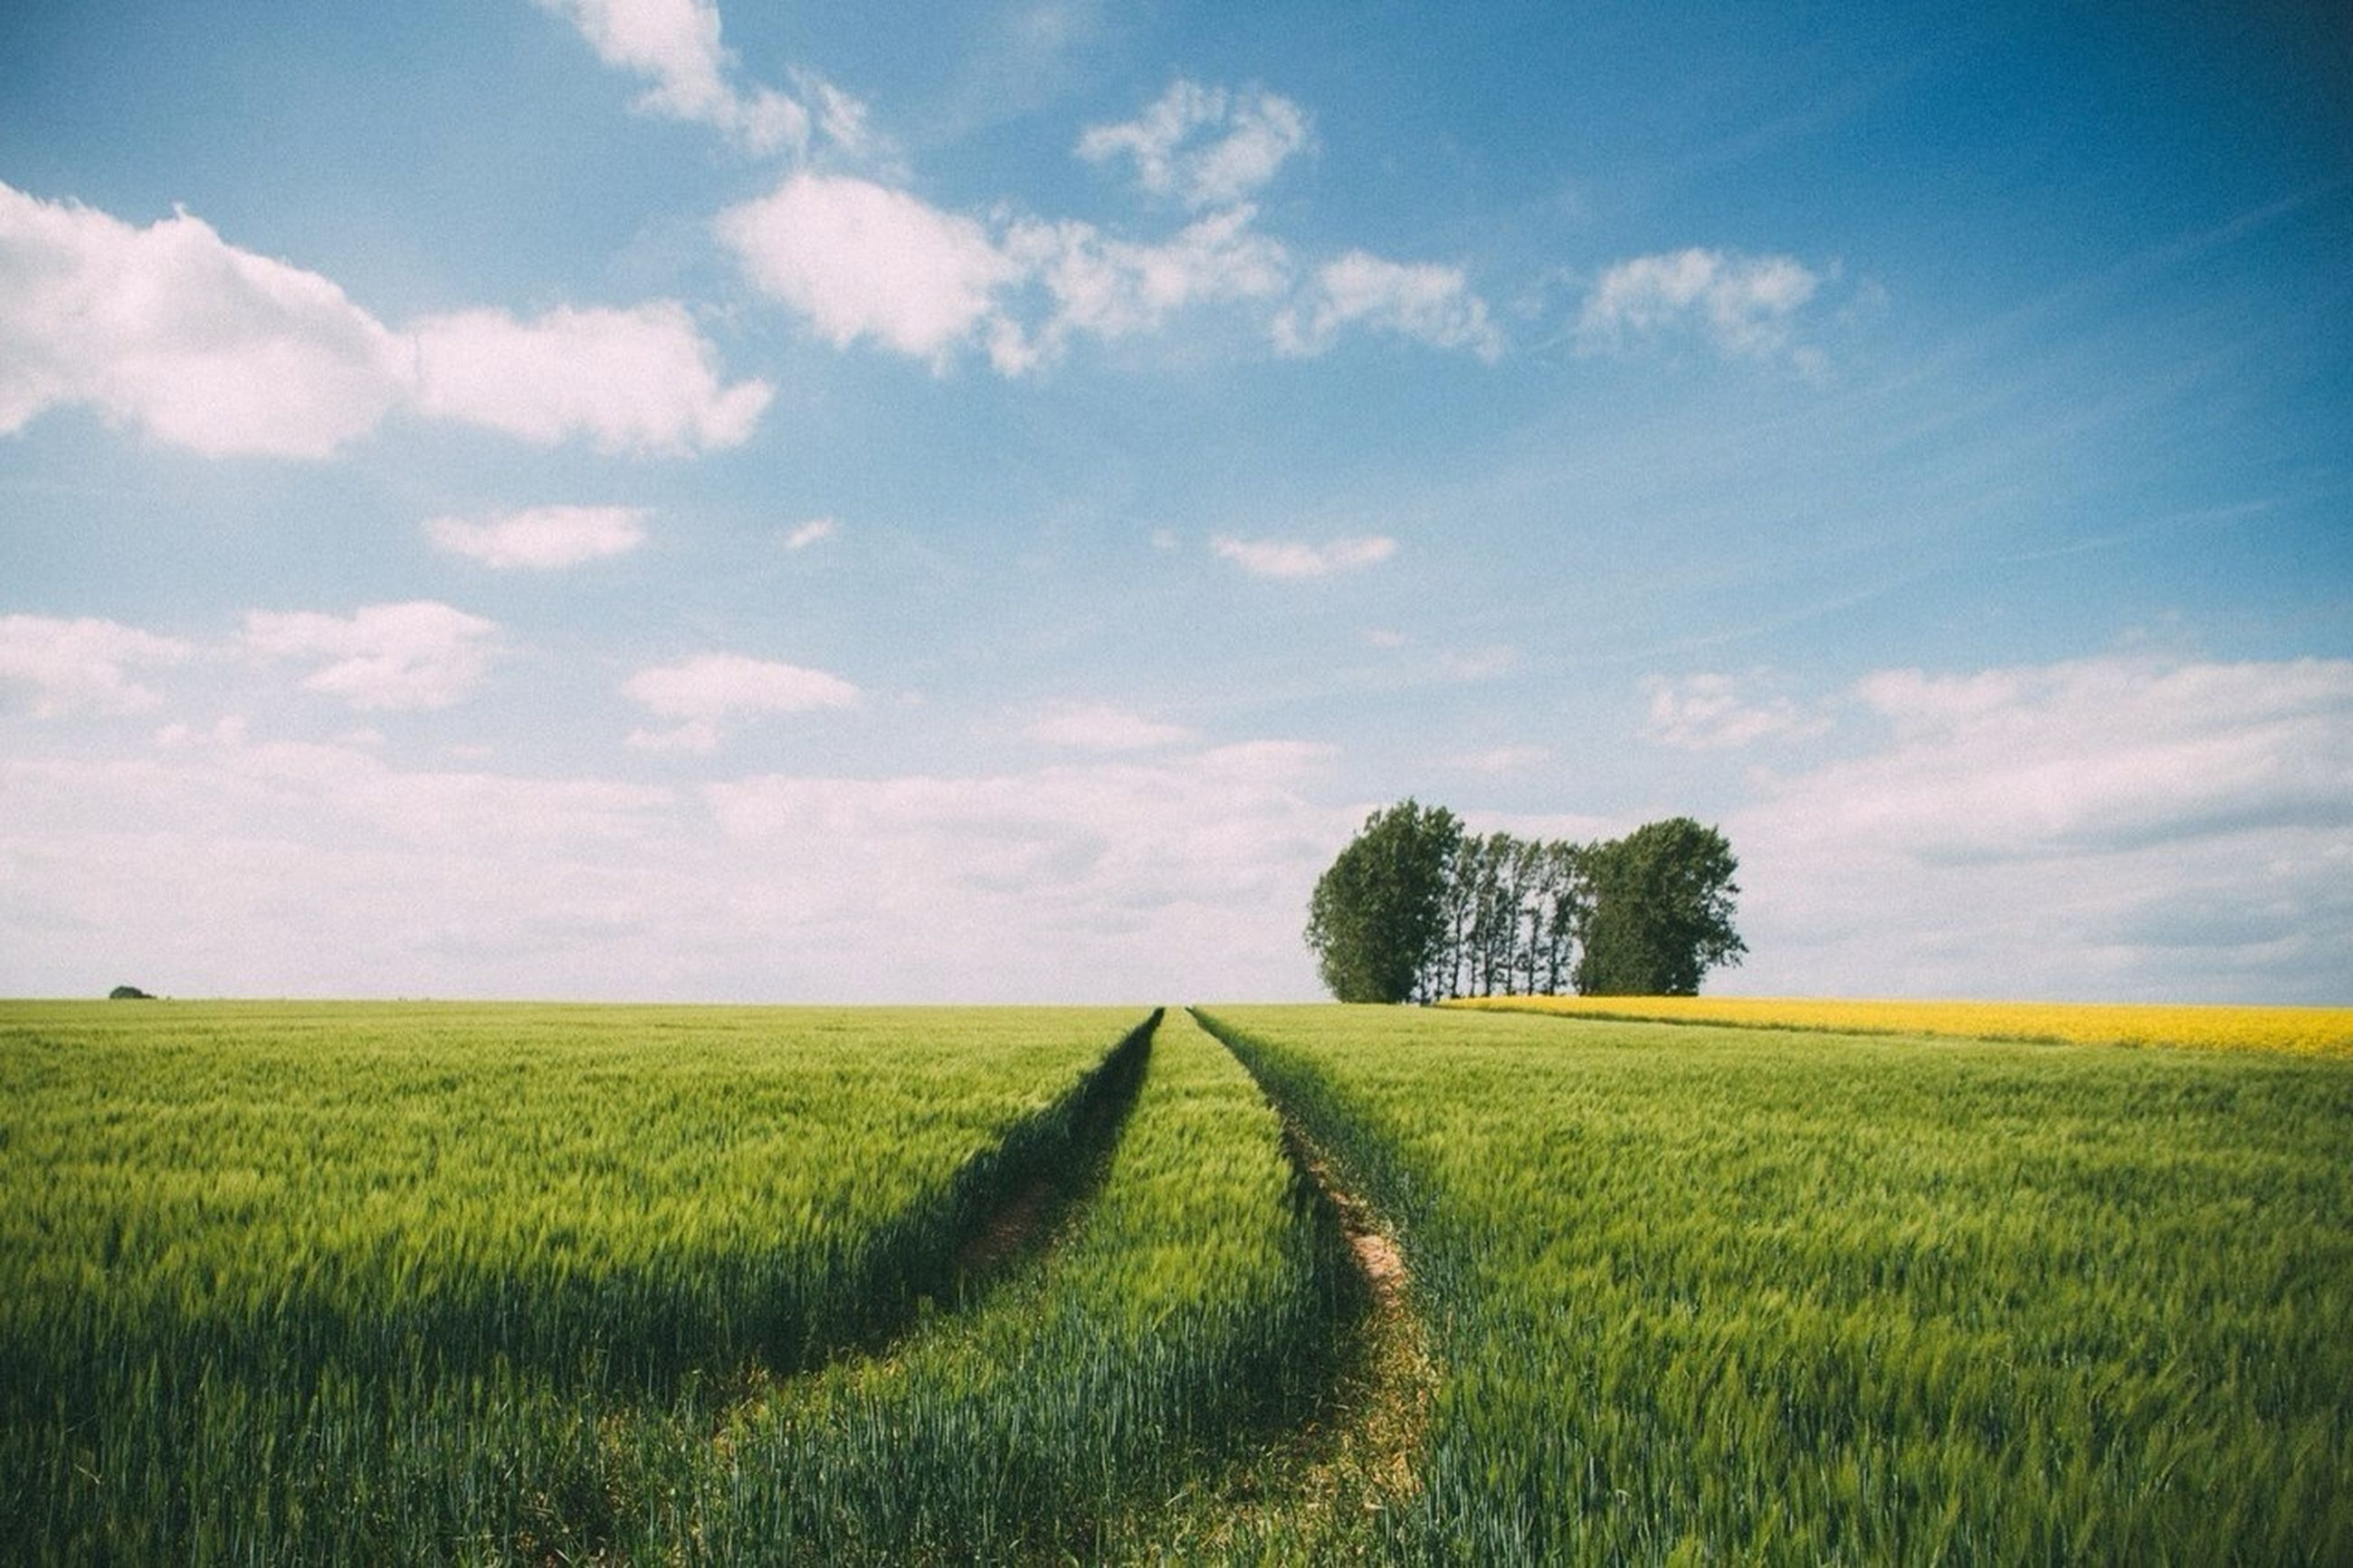 field, agriculture, rural scene, landscape, tranquil scene, sky, tranquility, farm, crop, growth, beauty in nature, nature, scenics, tree, grass, cultivated land, cloud - sky, cloud, green color, cultivated